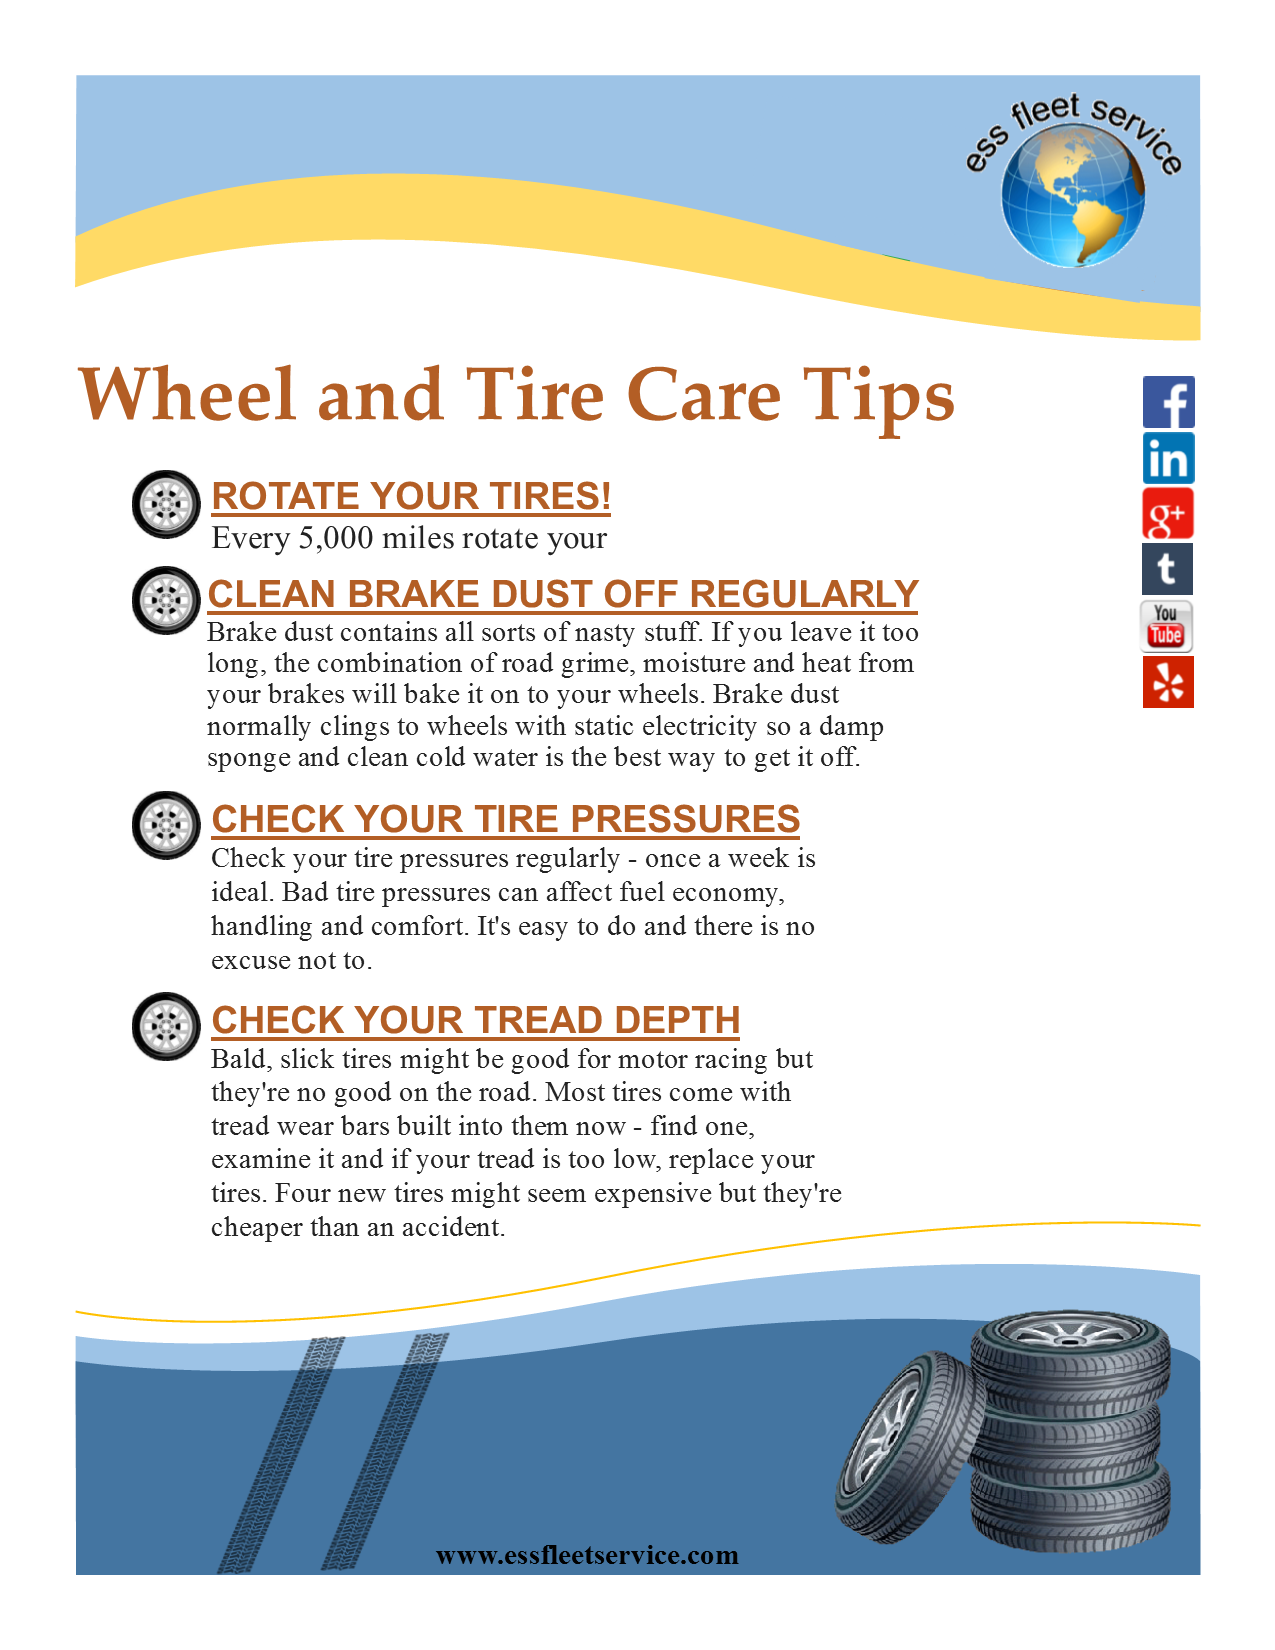 Wheel and Tire Care Tips